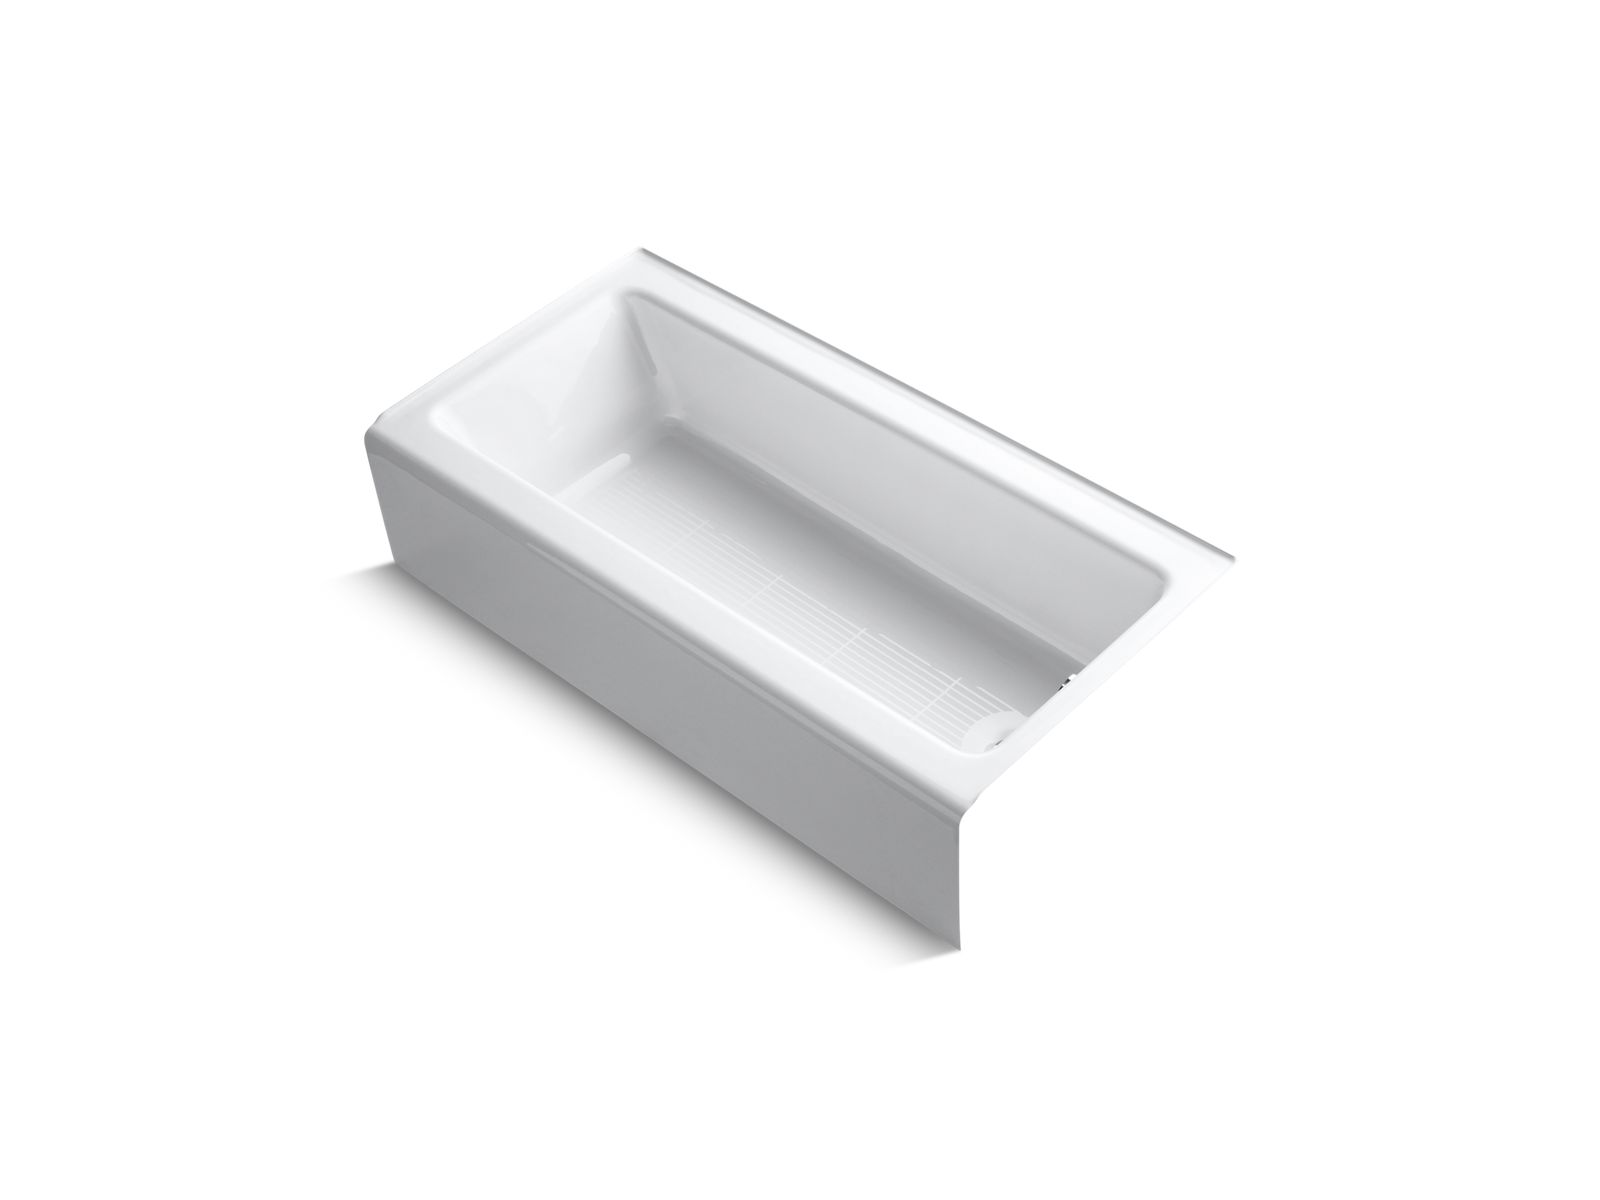 kohler k838 bellwether 5foot cast iron bath with right drain kohler - Kohler Tub